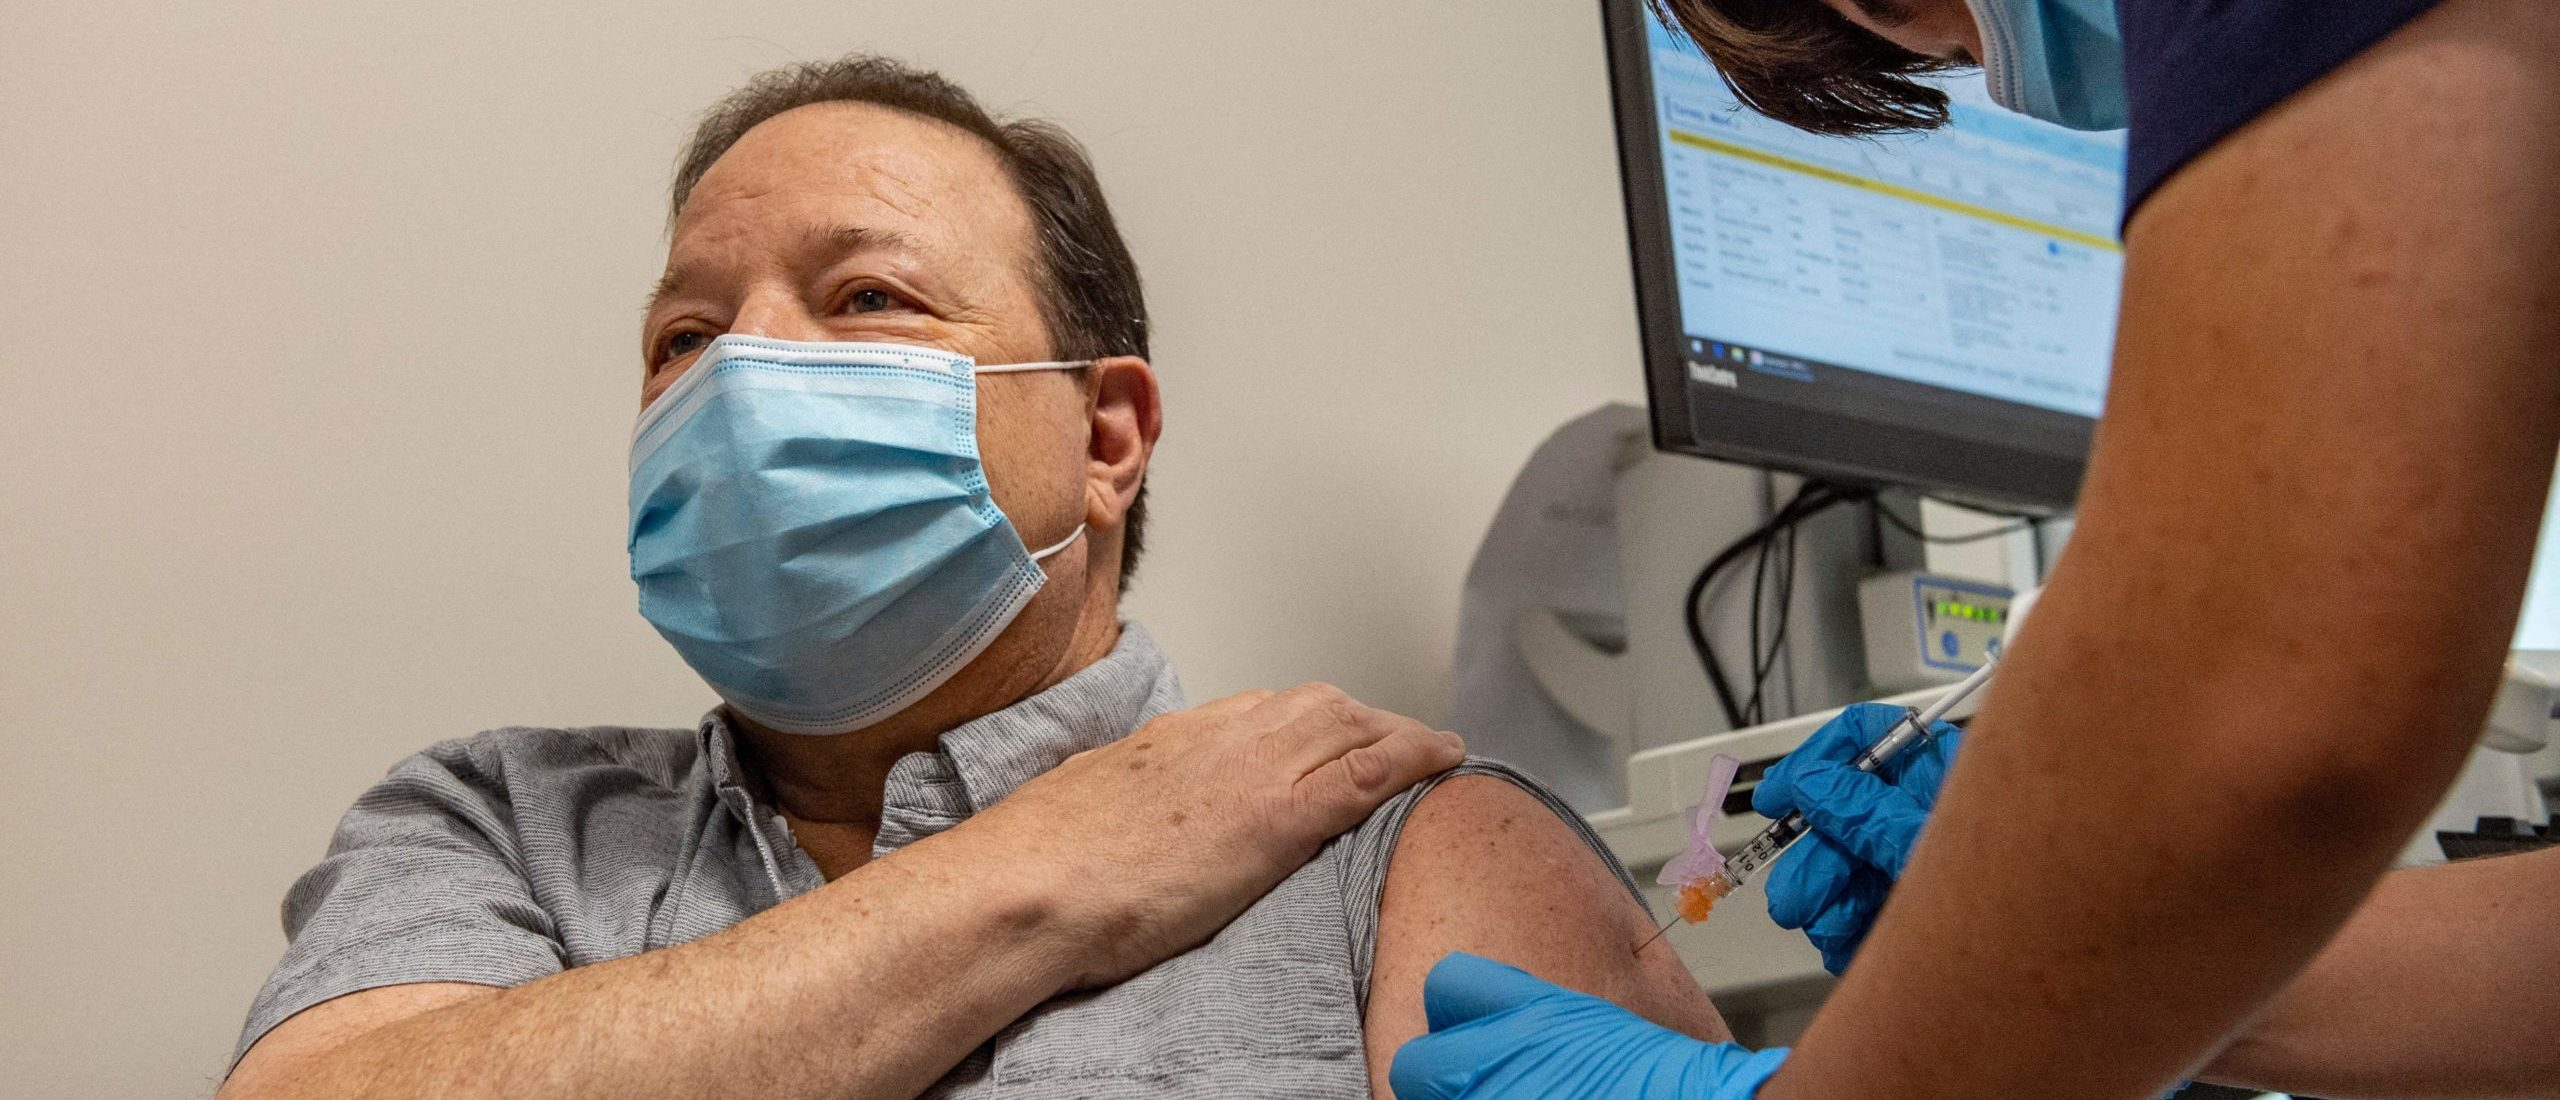 ANALYSIS: Universal Health Care Advocates Turn On The Unvaccinated